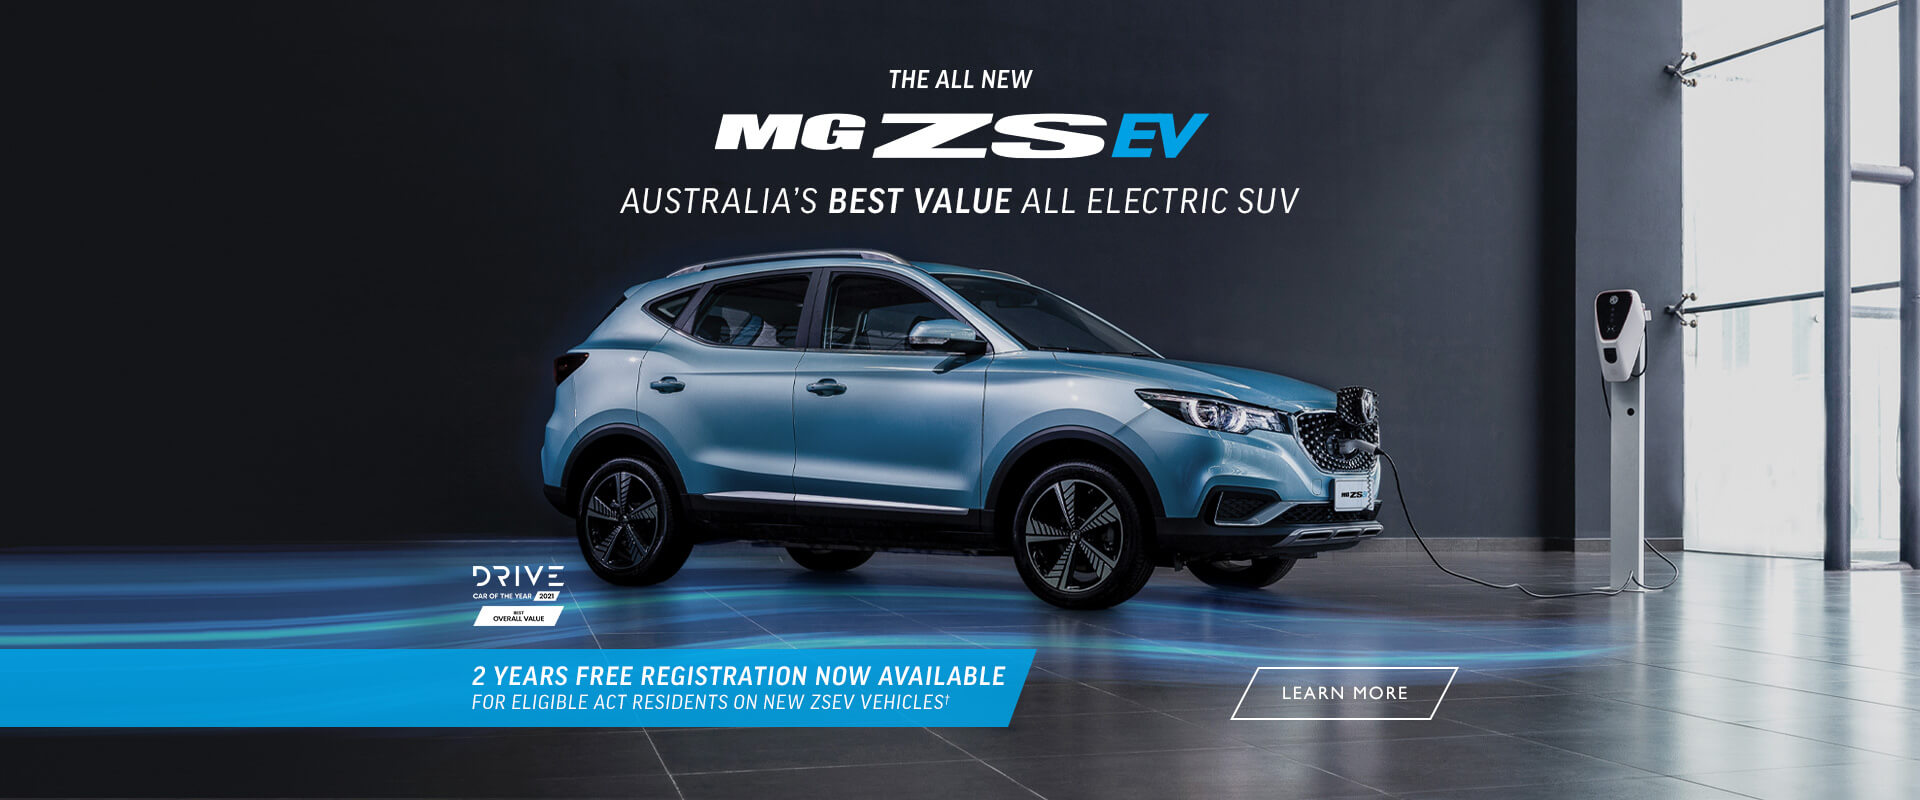 The new MG ZS EV. 2 Years Free Registration Now Available.